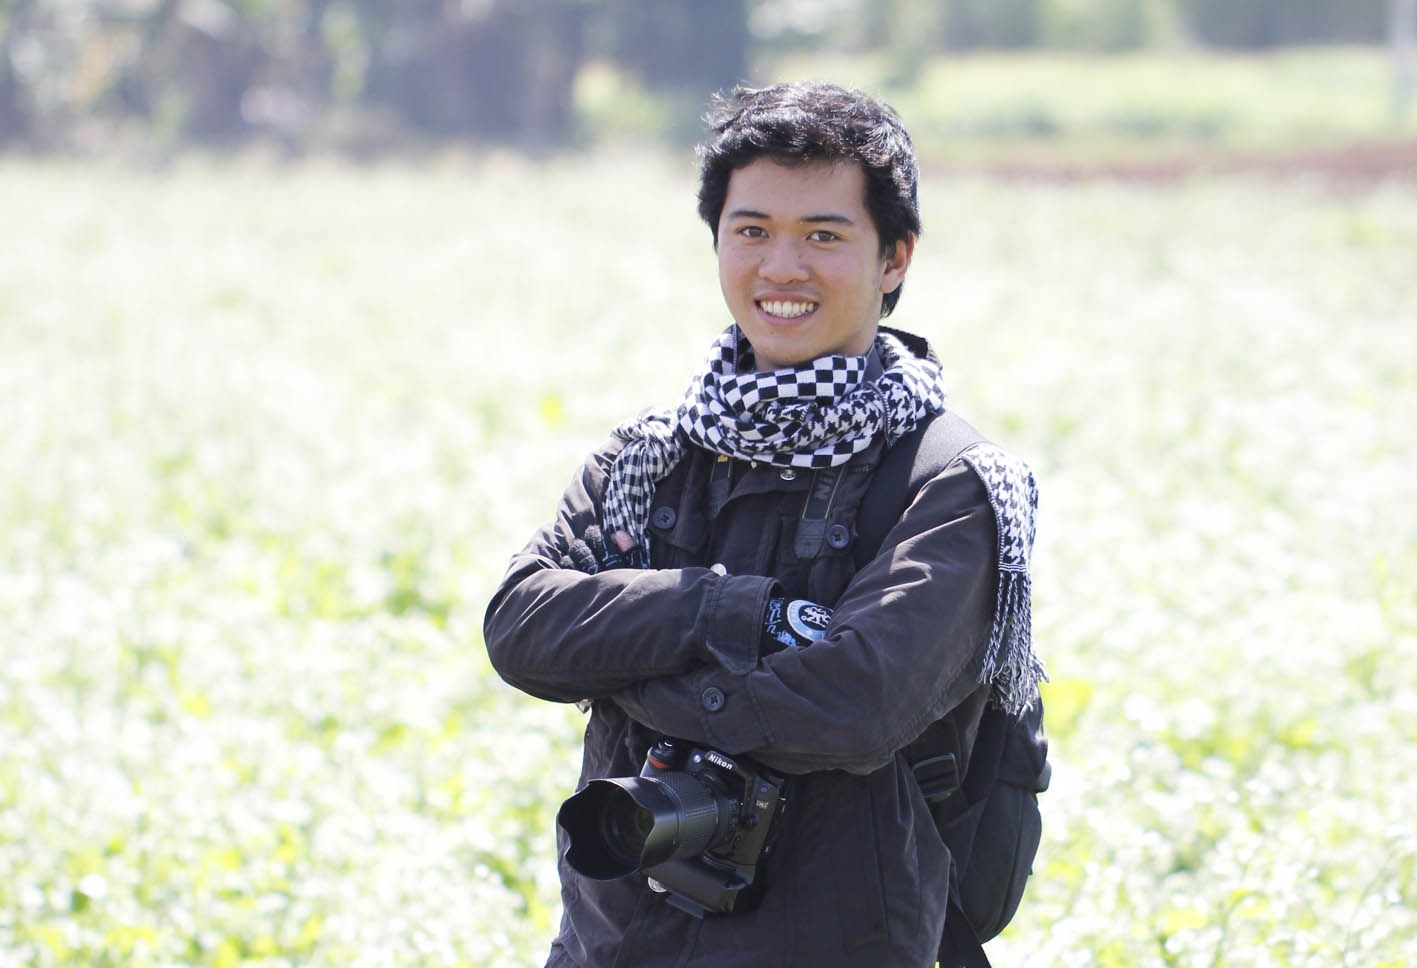 Vietnamese man's tourism business begins with tree planting, forest protection